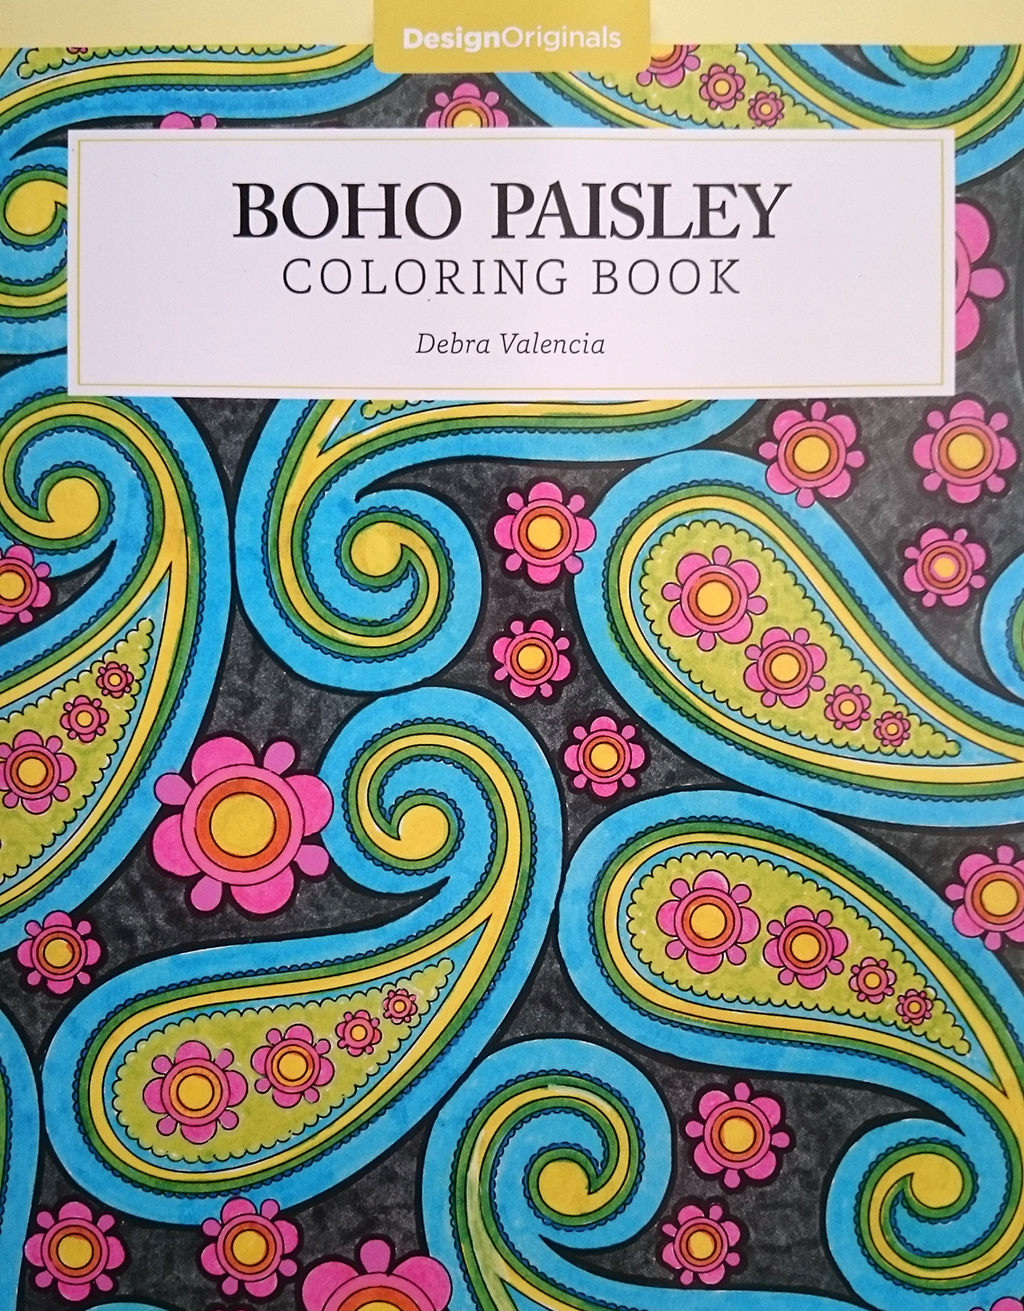 Boho-Paisley-Coloring-Book-01